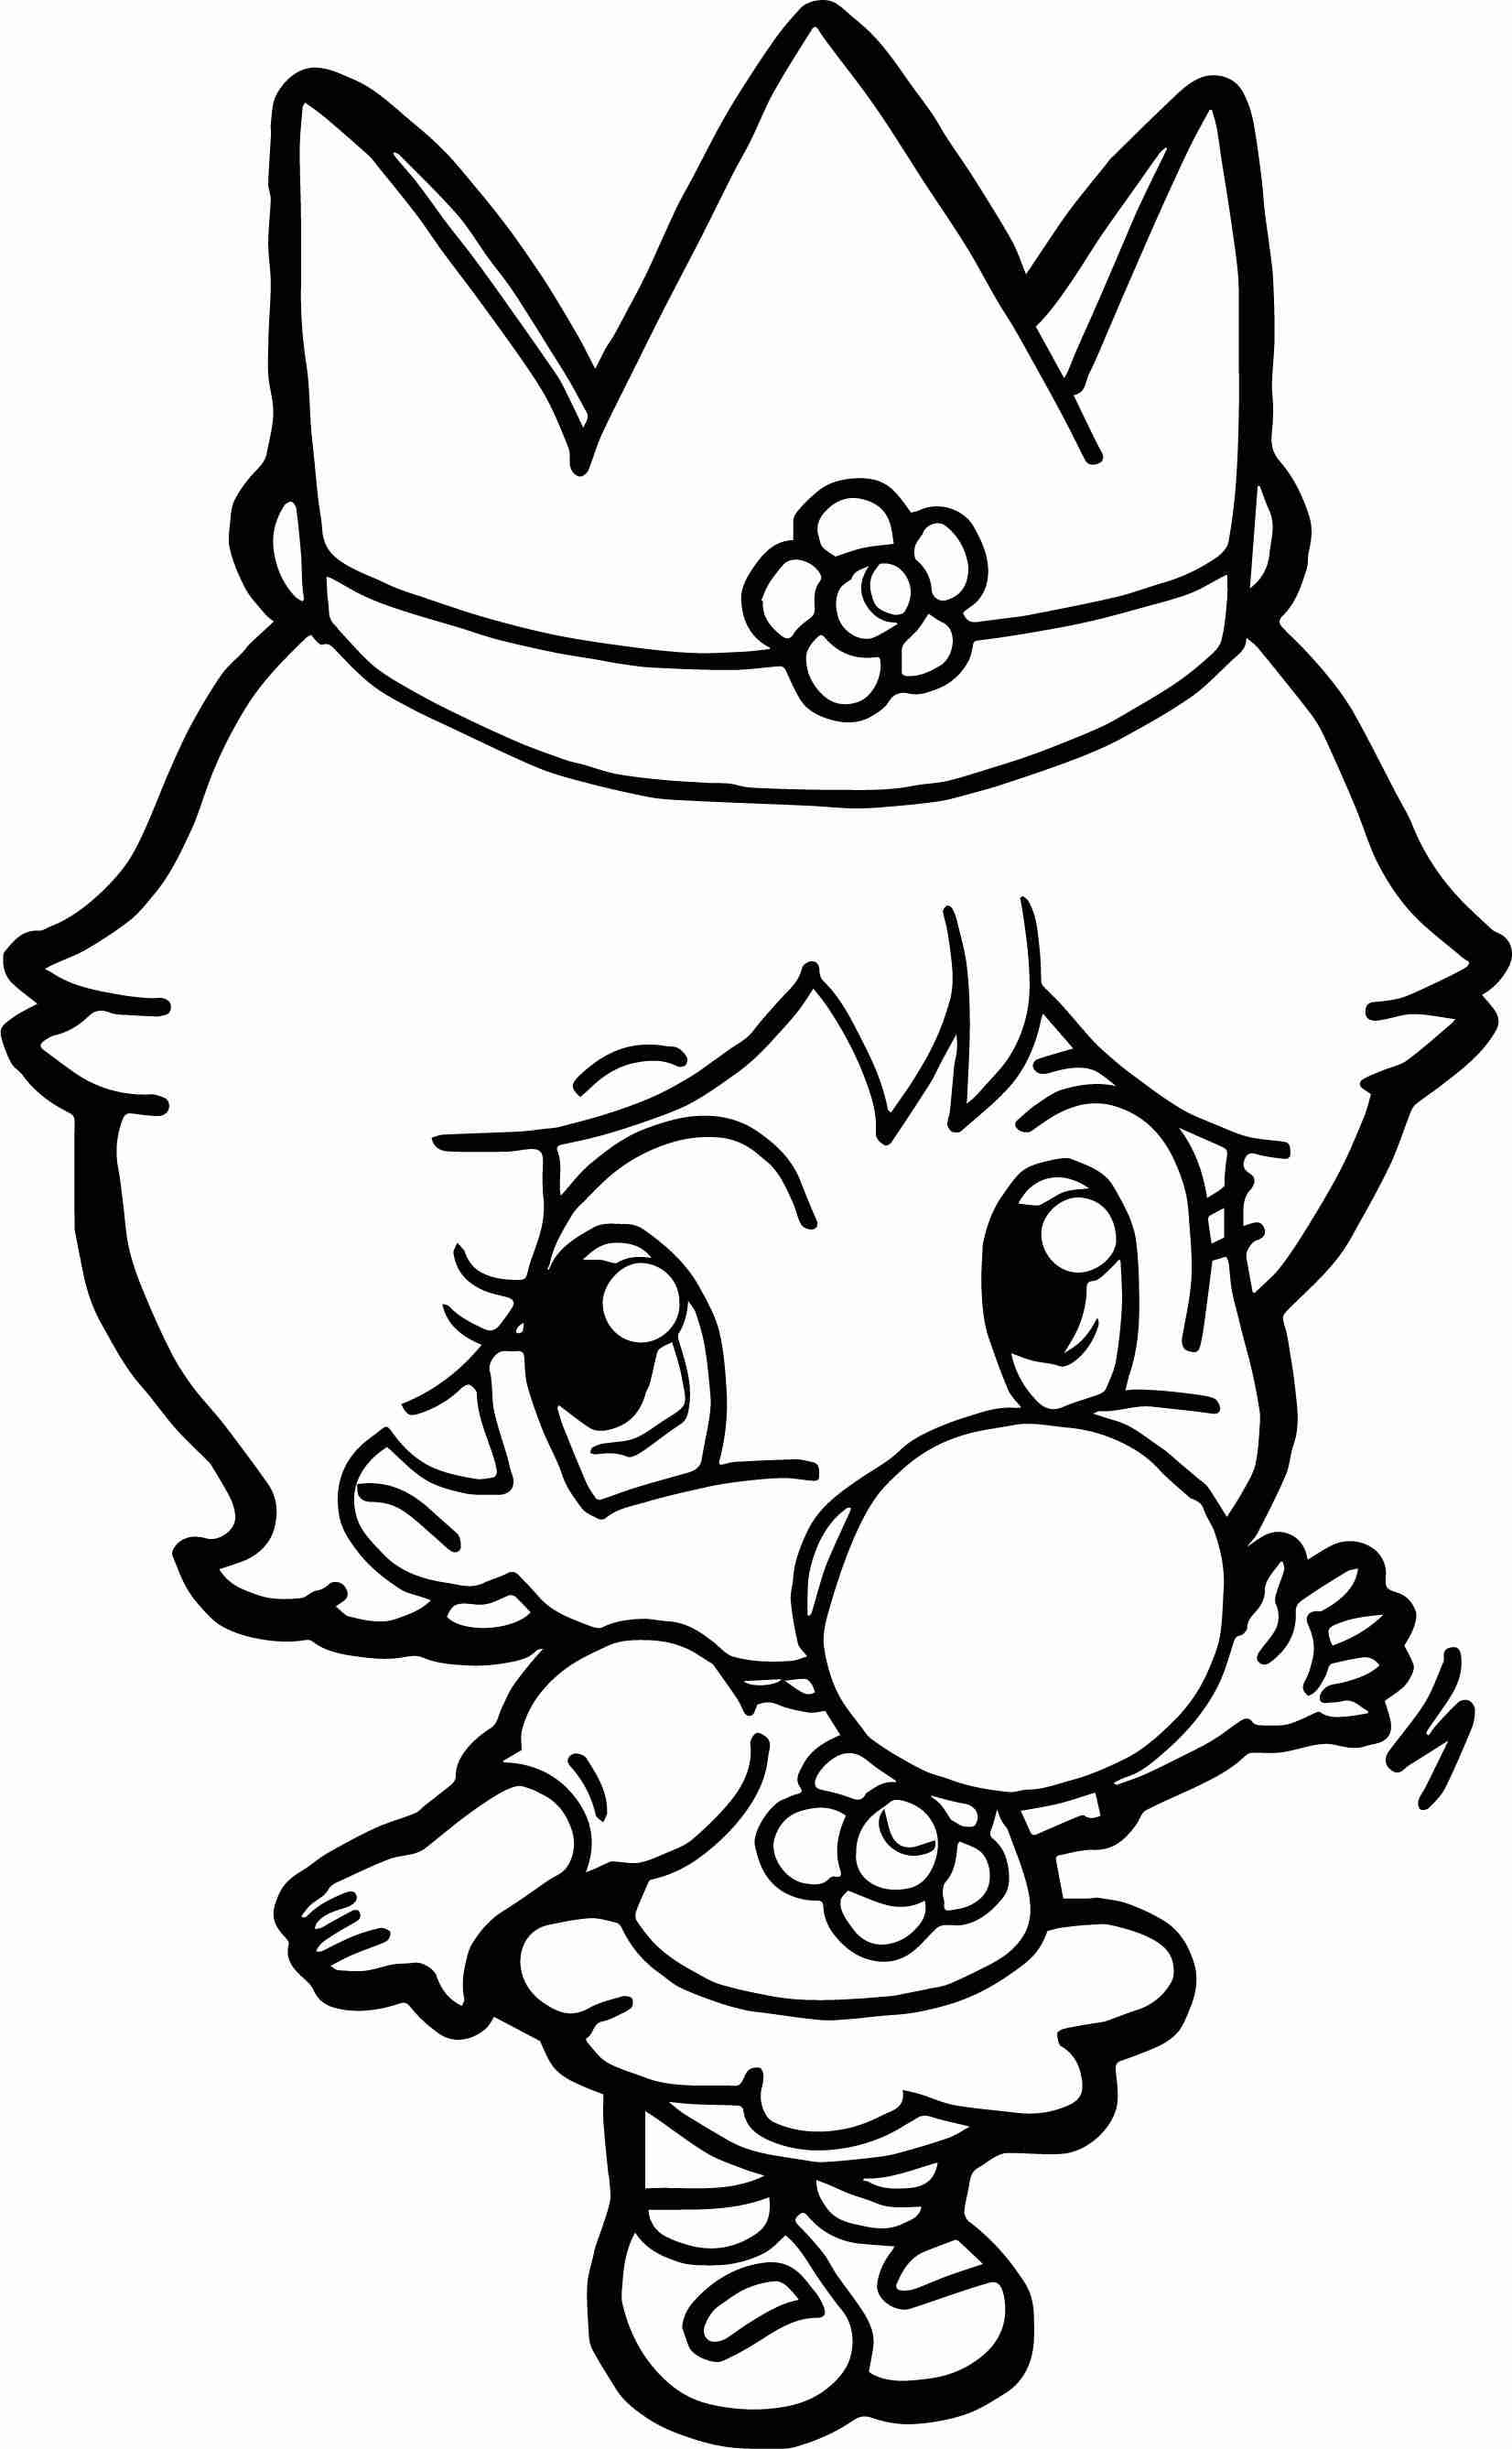 1652x2675 Baby Daisy Coloring Page Wecoloringpage And Mario Pages Olegratiy